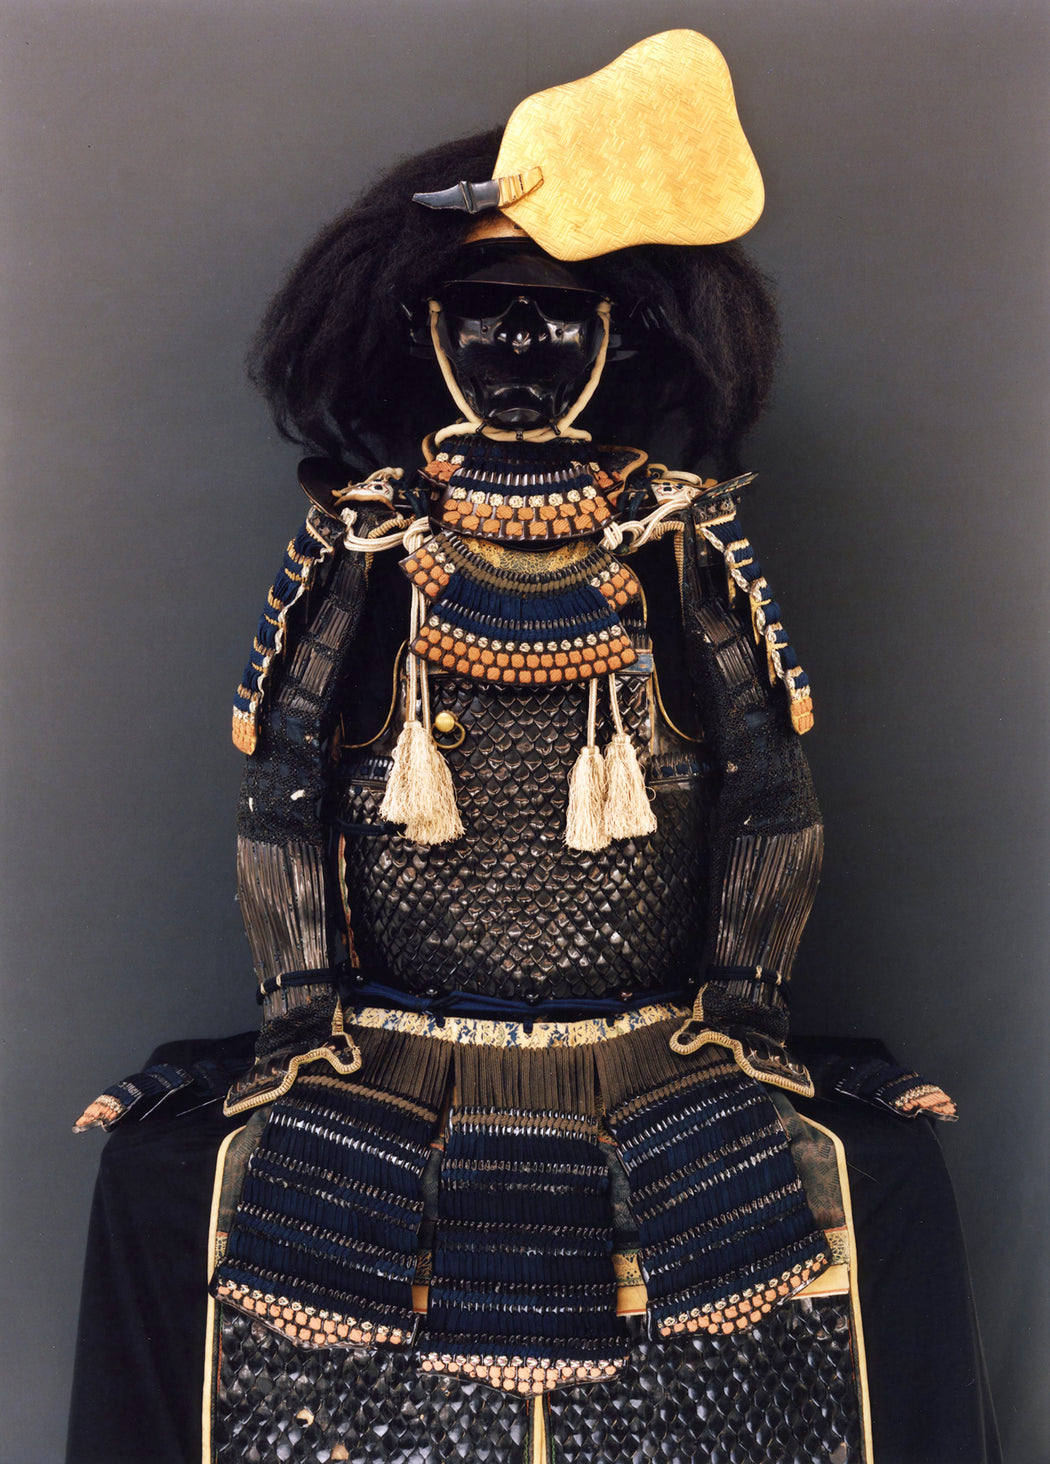 B 29-18-1 Courtesy Samurai Art Museum–Collection Janssen, Berlin, Germany